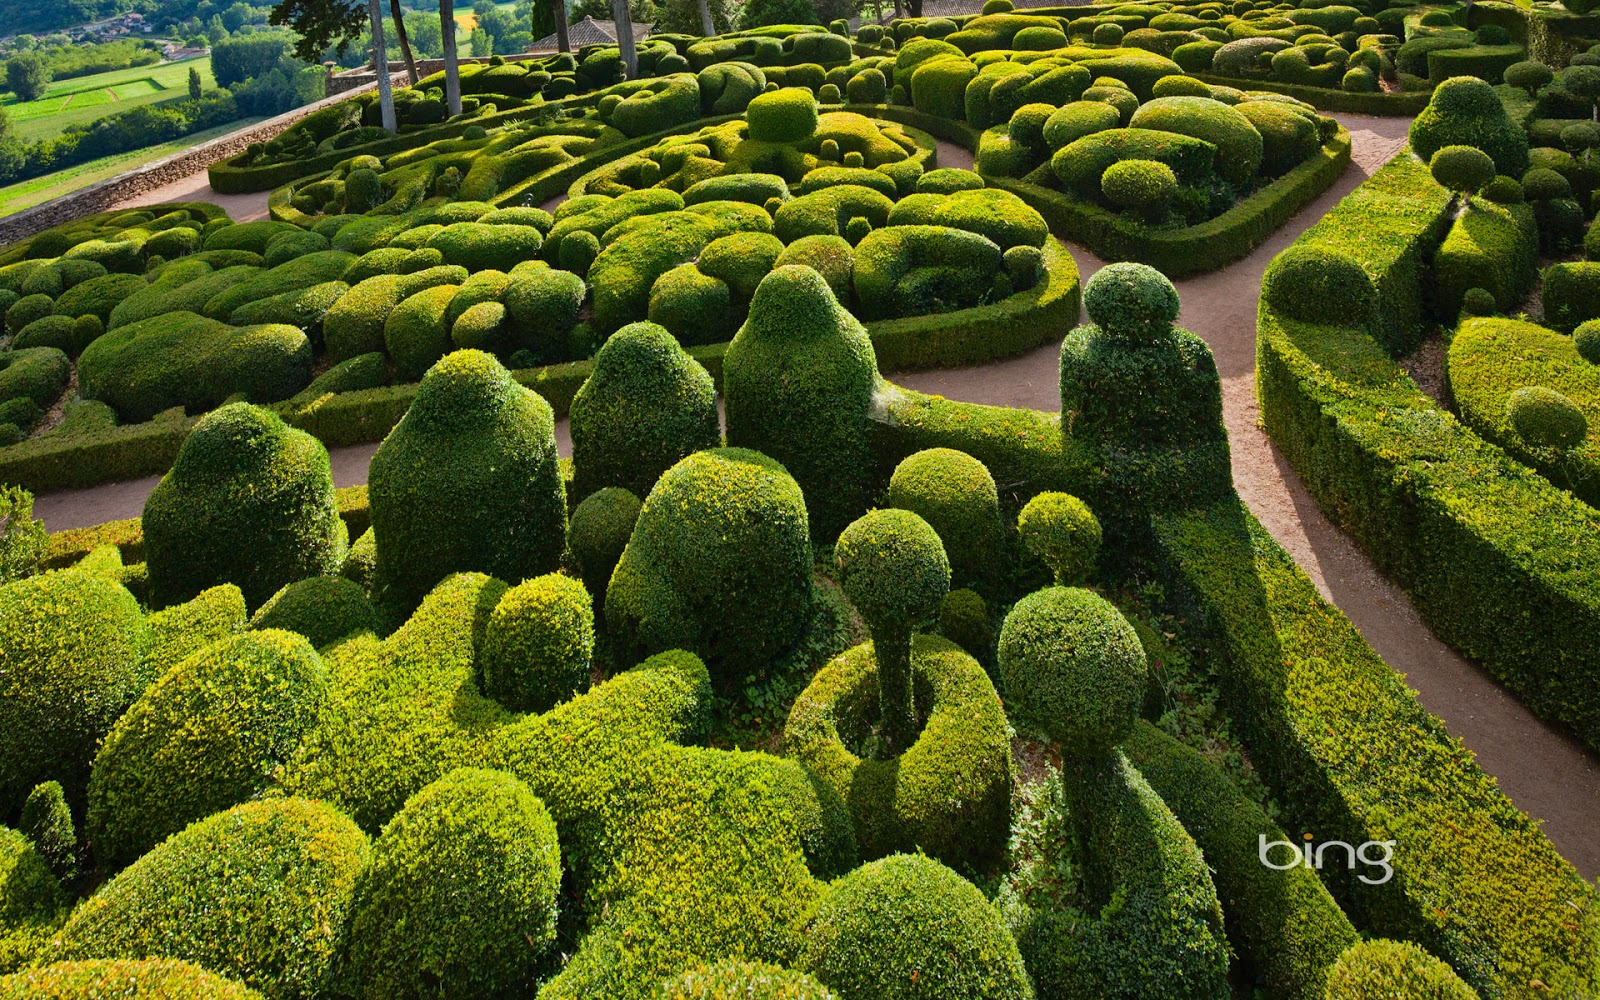 Sculpted boxwoods at the Chateau de Marqueyssac in Vézac, France